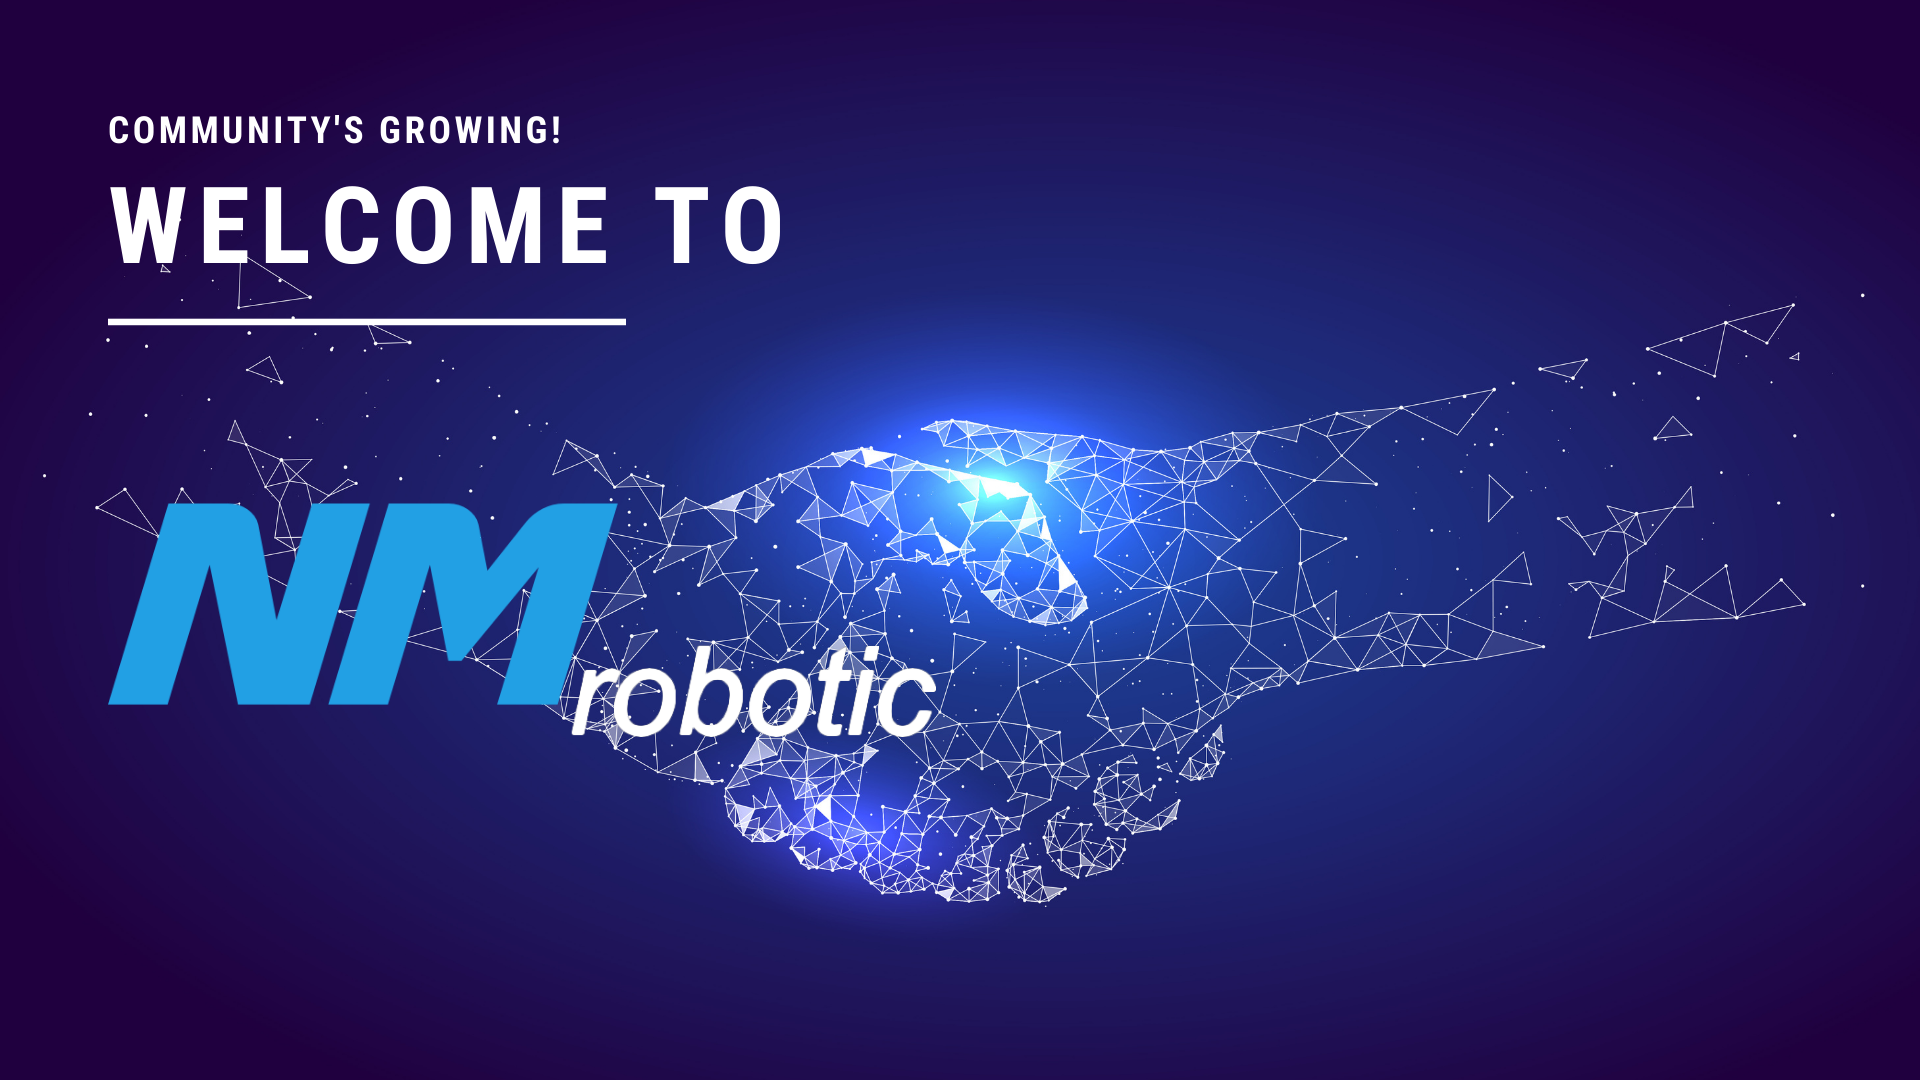 Welcome to NM ROBOTIC